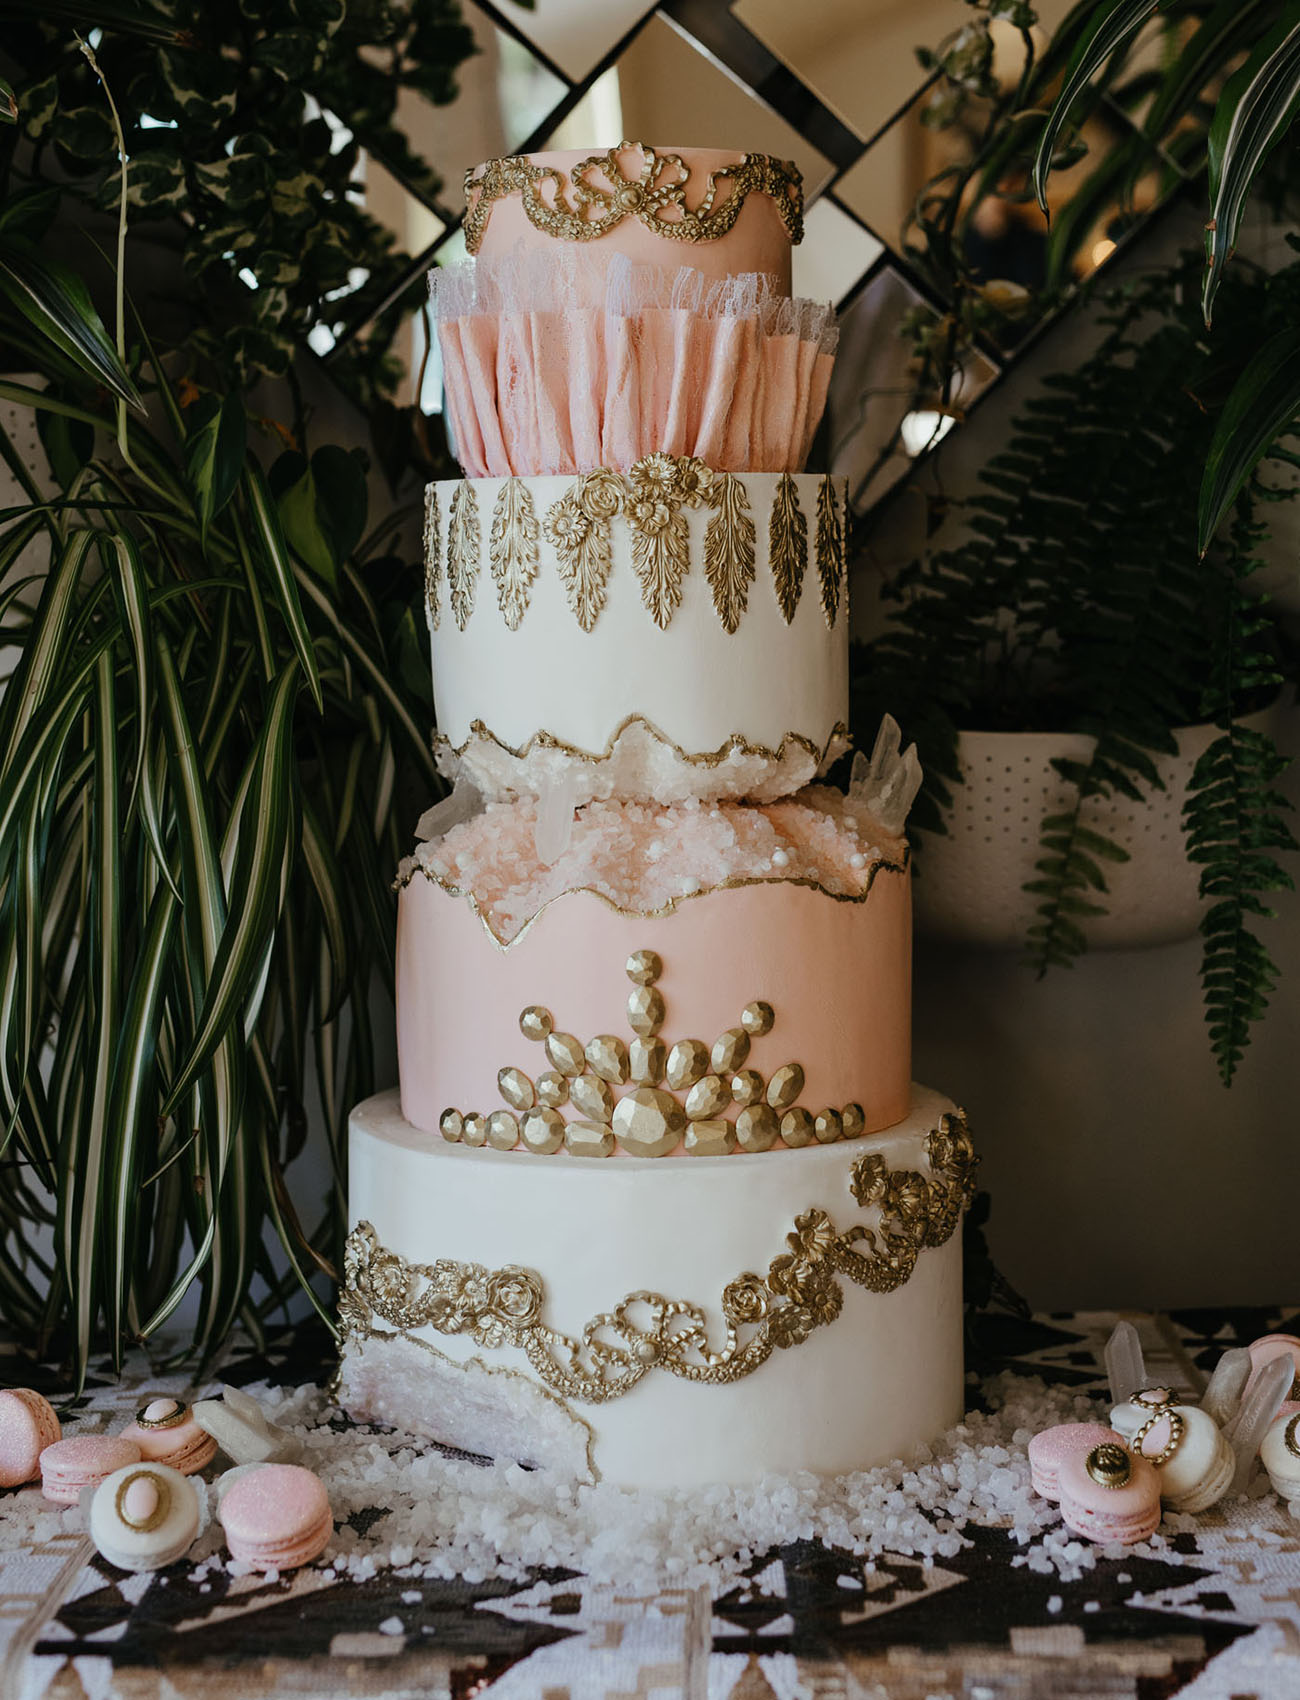 The wedding cake wa s aregal one with edible gold patterns, geodes and rhinestones for a Victorian touch